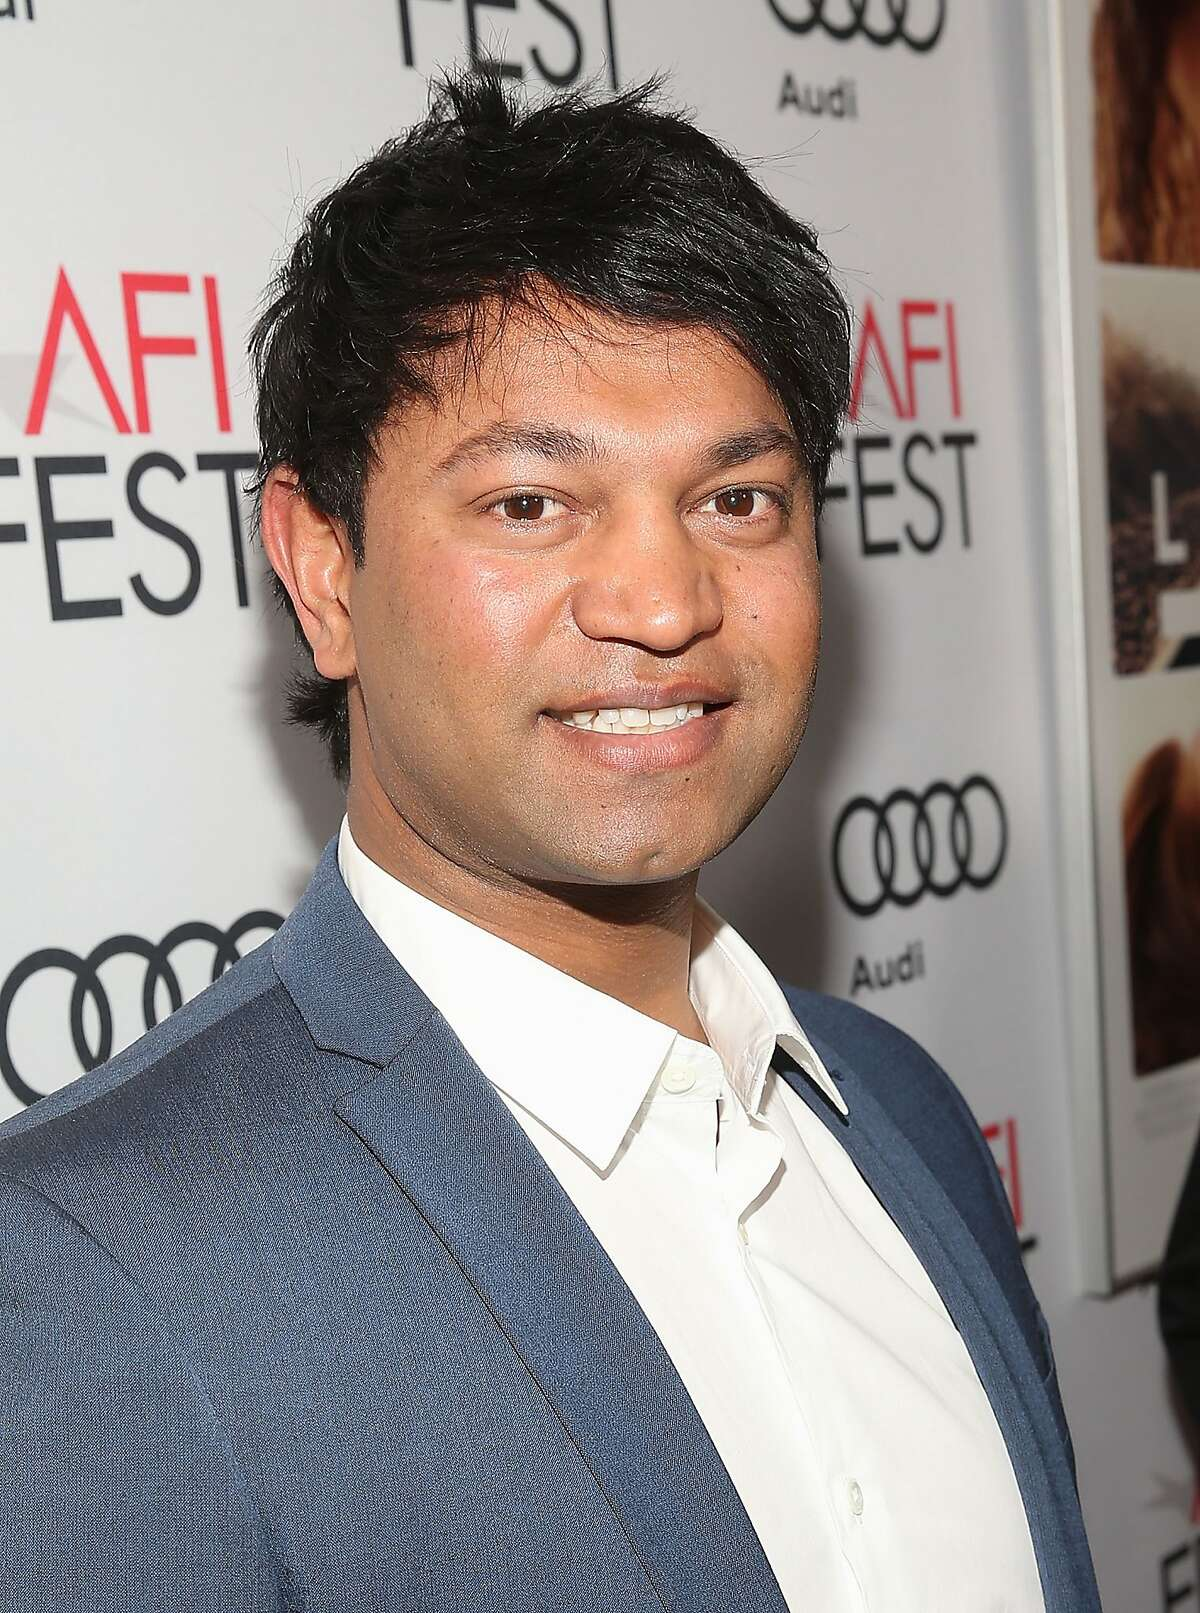 LOS ANGELES, CA - NOVEMBER 11: Author Saroo Brierley attends the premiere of The Weinstein Company's 'Lion' at AFI Fest 2016 on November 11, 2016 in Los Angeles, California. (Photo by Jesse Grant/Getty Images for TWC-Dimension)